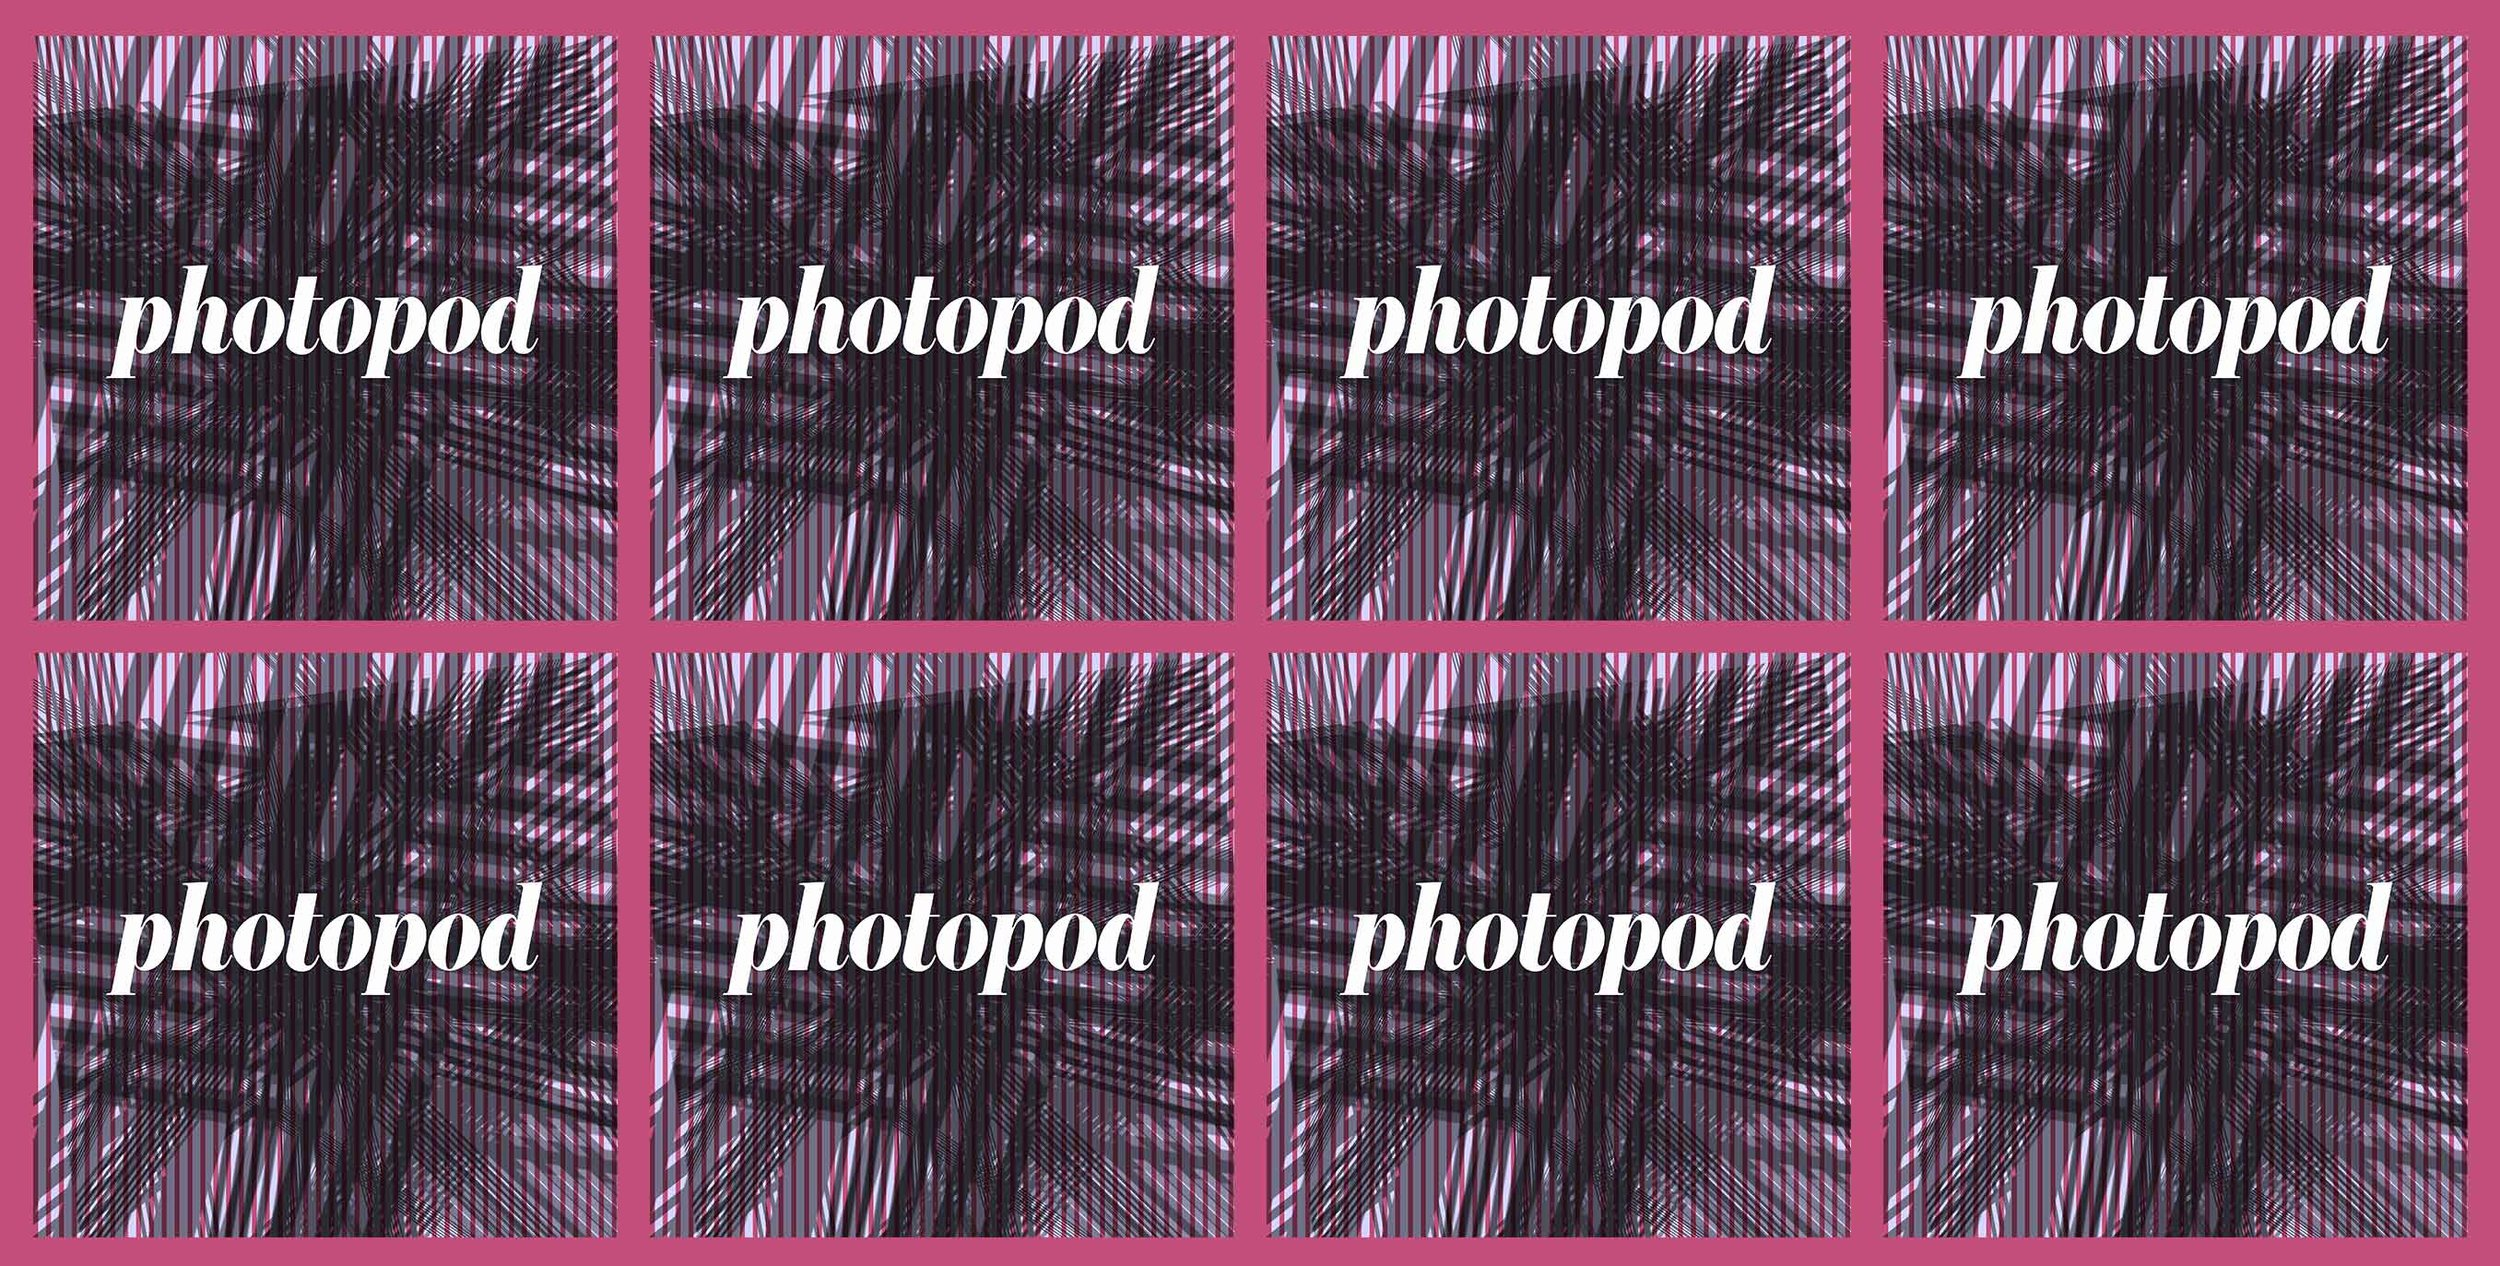 I Have a Podcast! - Check out my new podcast about the photography industry, called Photopod!